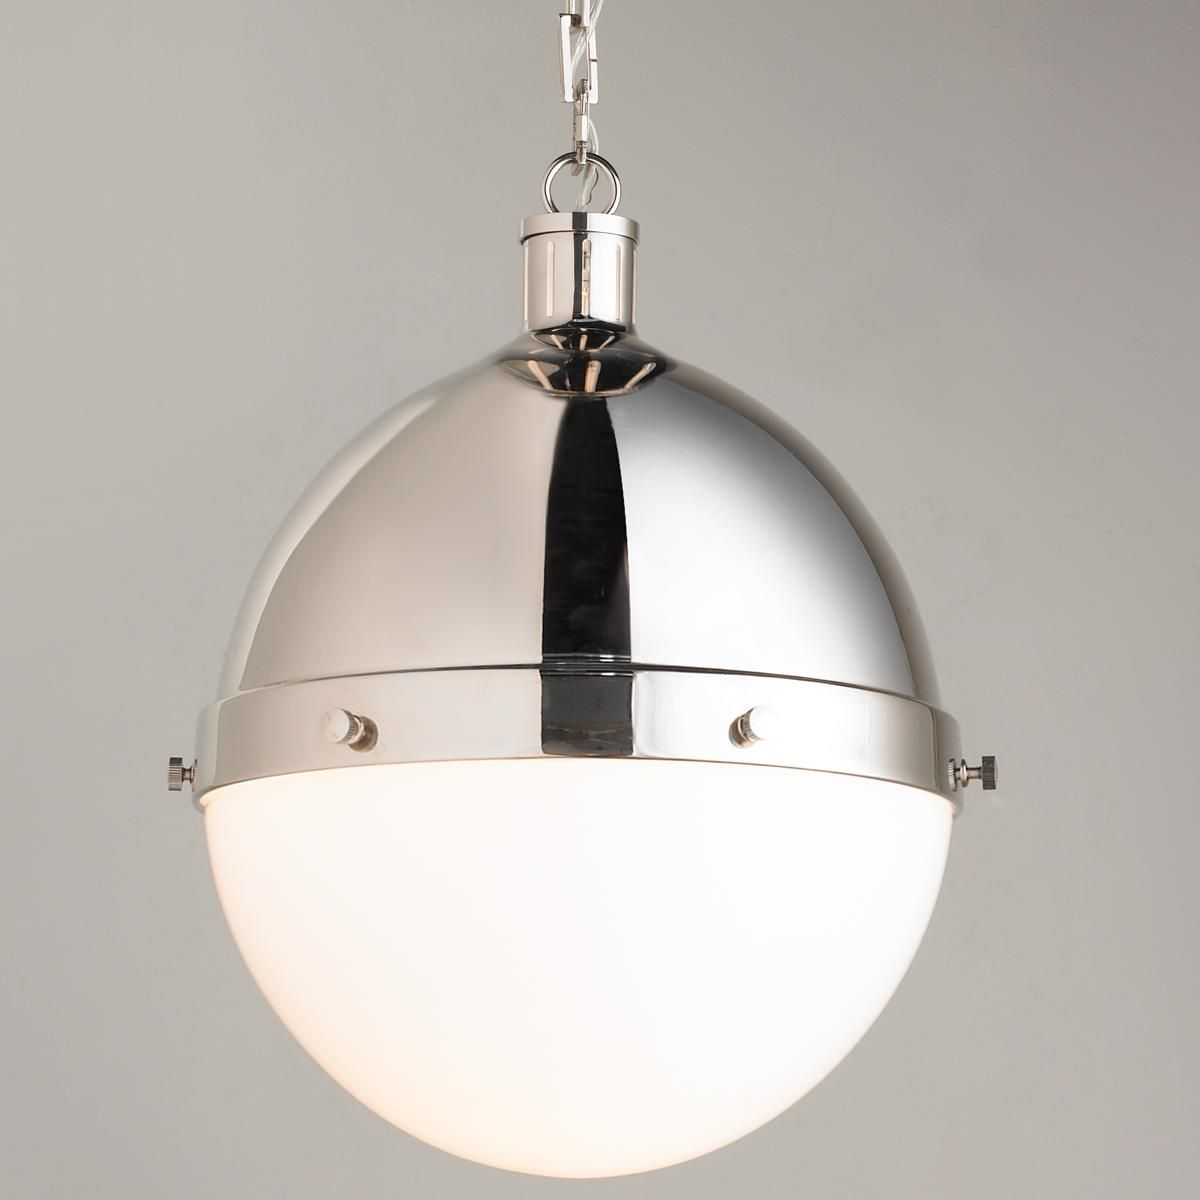 iconic lighting. Iconic Classic Globe Pendant - Large Lighting C